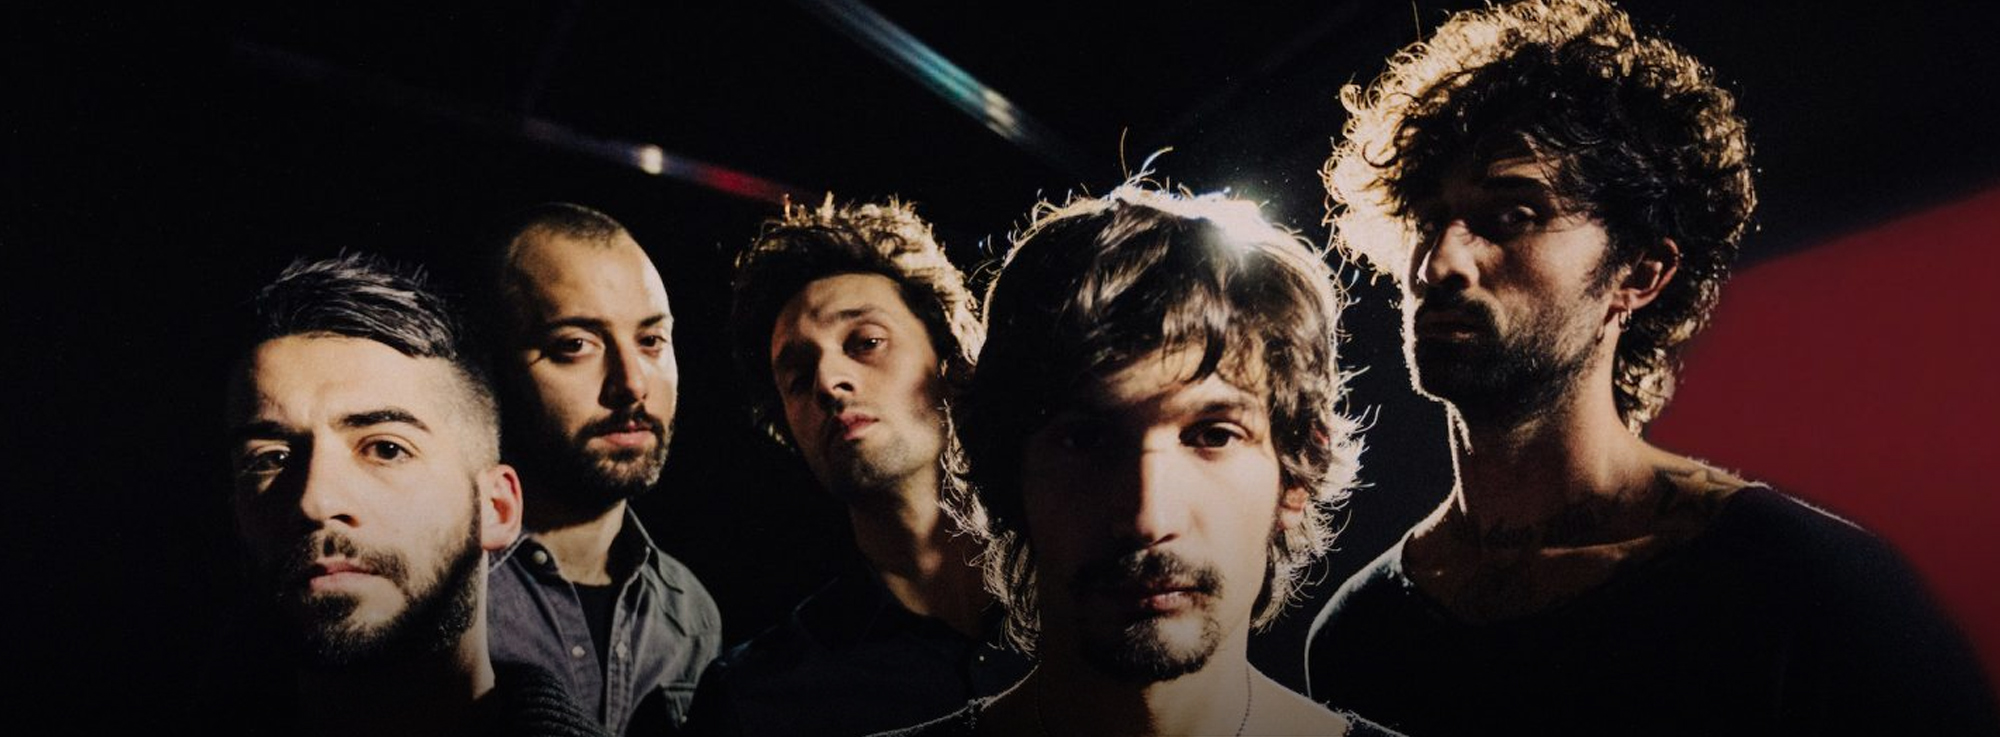 Lecce: Caramelle Live in tour